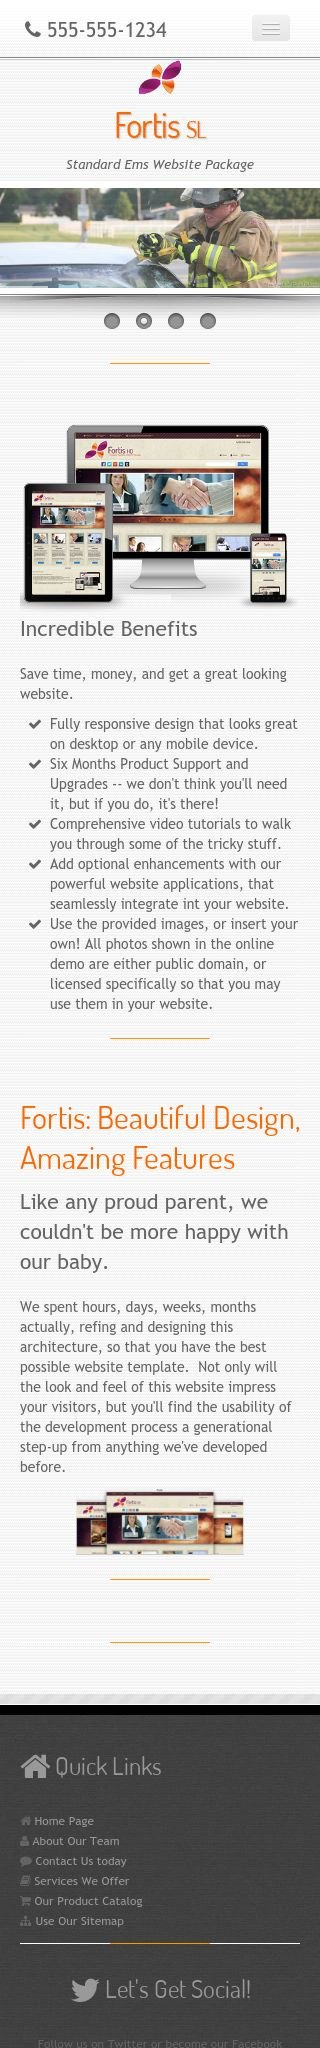 Mobile: Ems Wordpress Theme